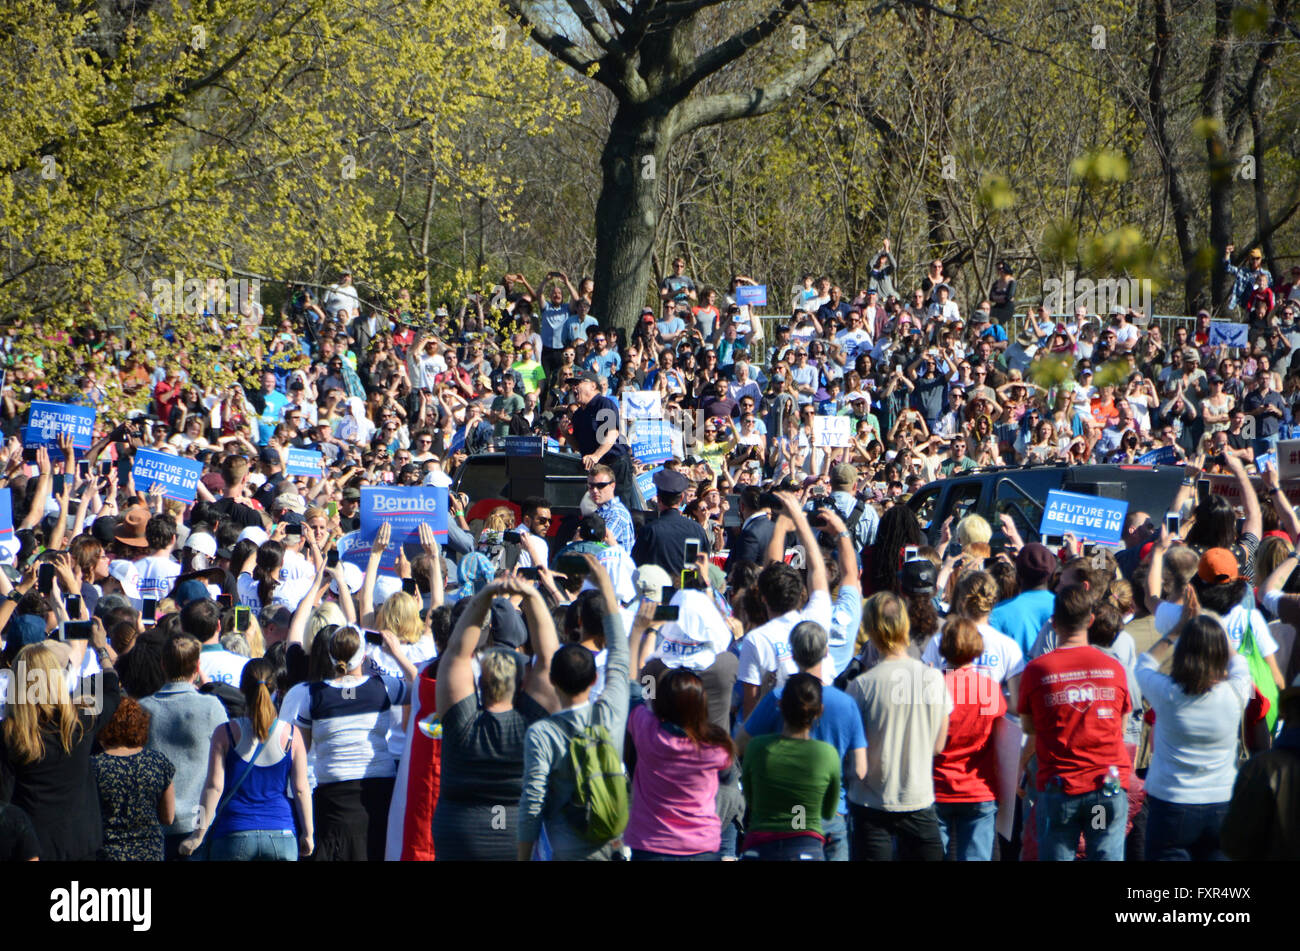 Brooklyn, New York, USA. 17 avril, 2016. Danny devito s'adresse à la foule Bernie Sanders Brooklyn Prospect Photo Stock